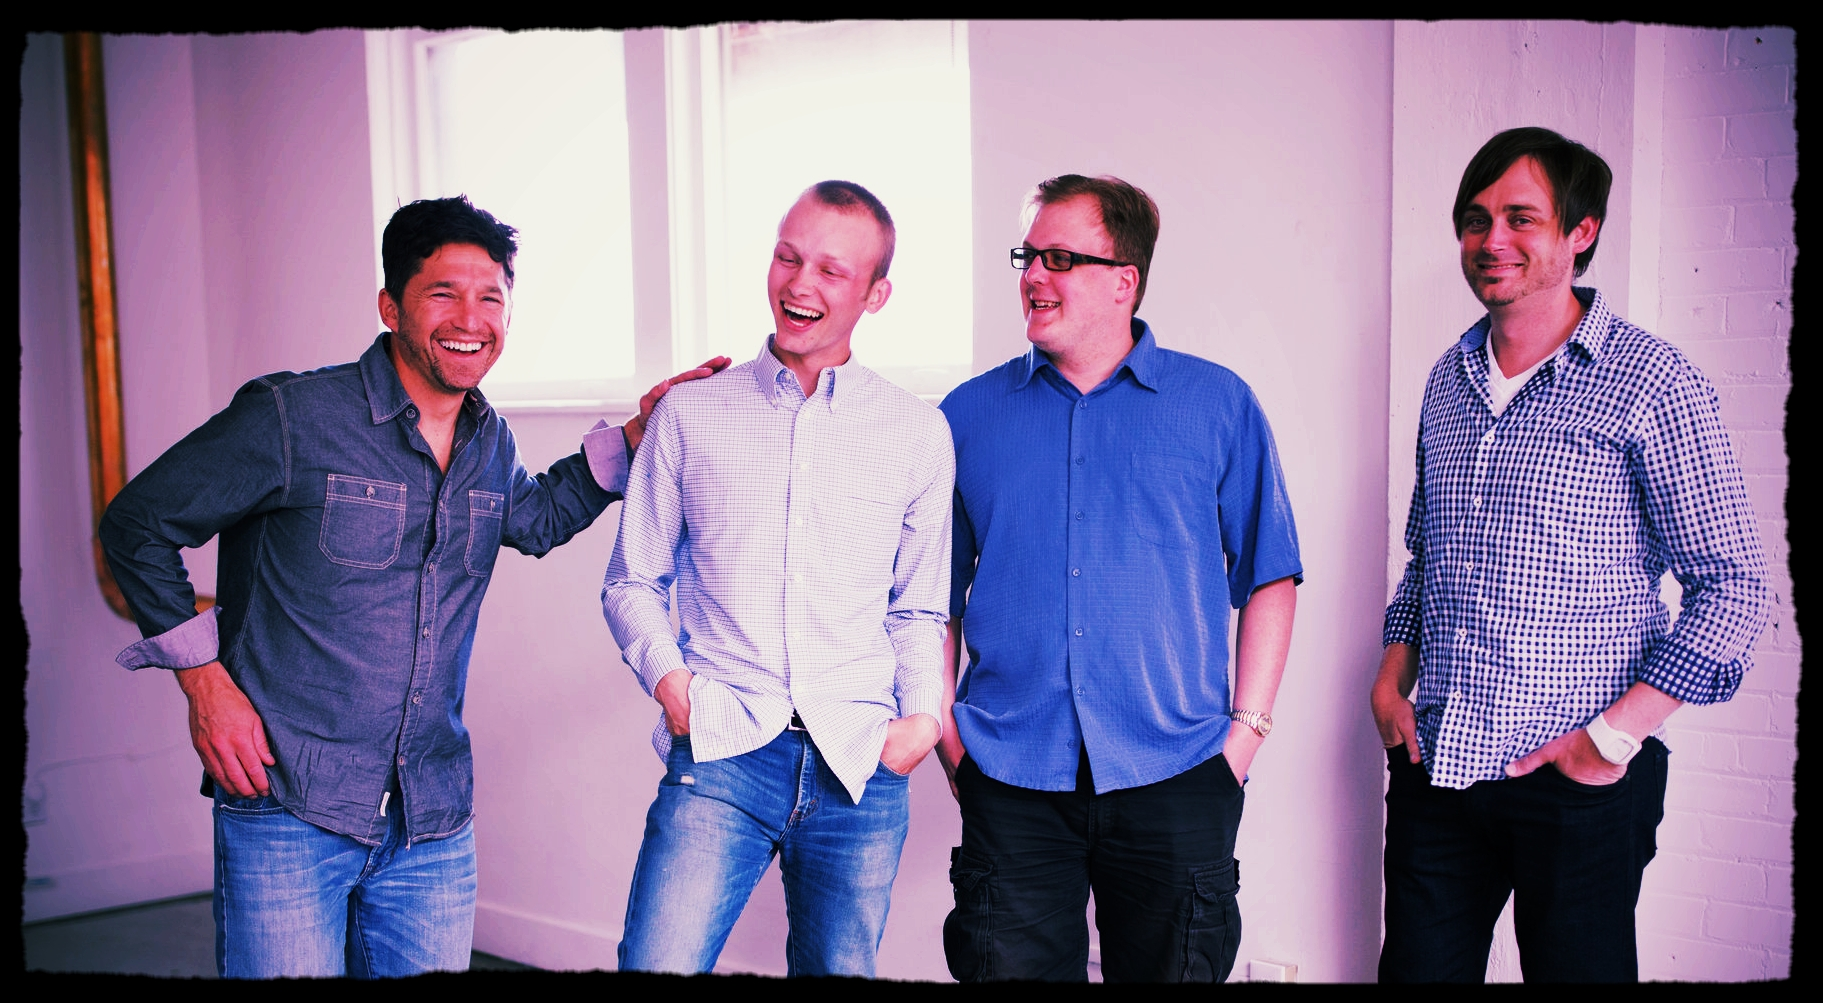 Scott (oo7), Andy, Chris (Wolf) and Steve (Mi6) Hanging Out At The Last Photo Shoot